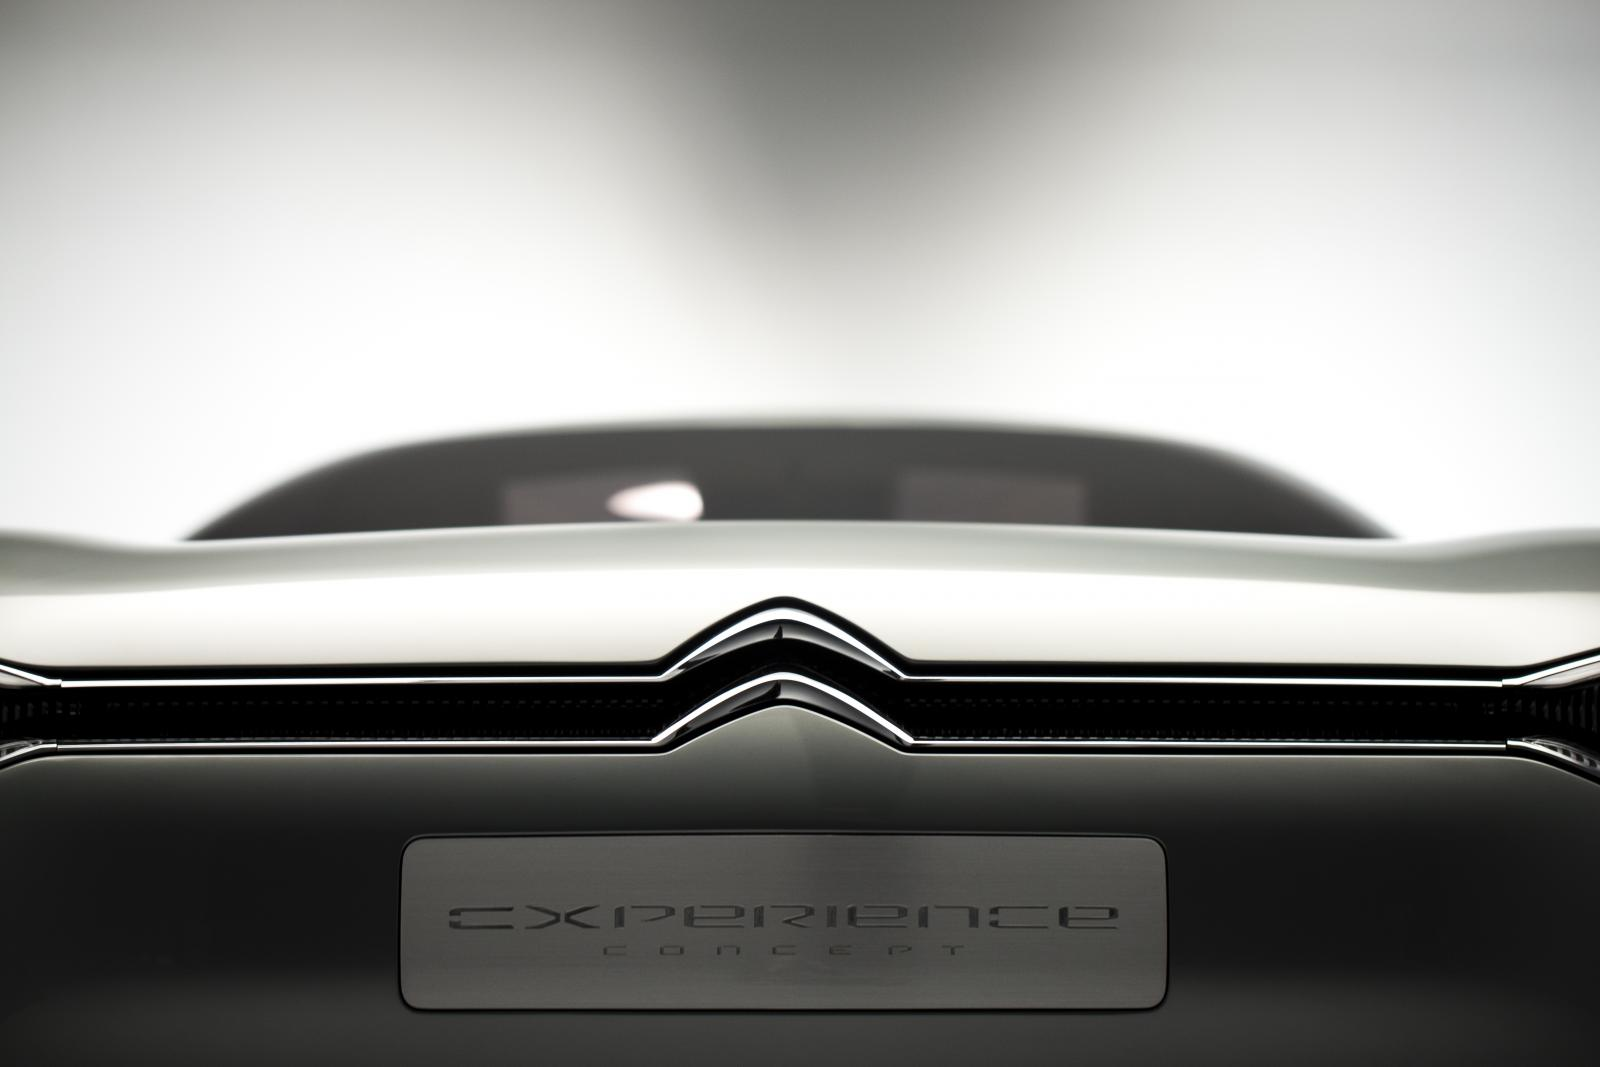 Cxperience - Front view